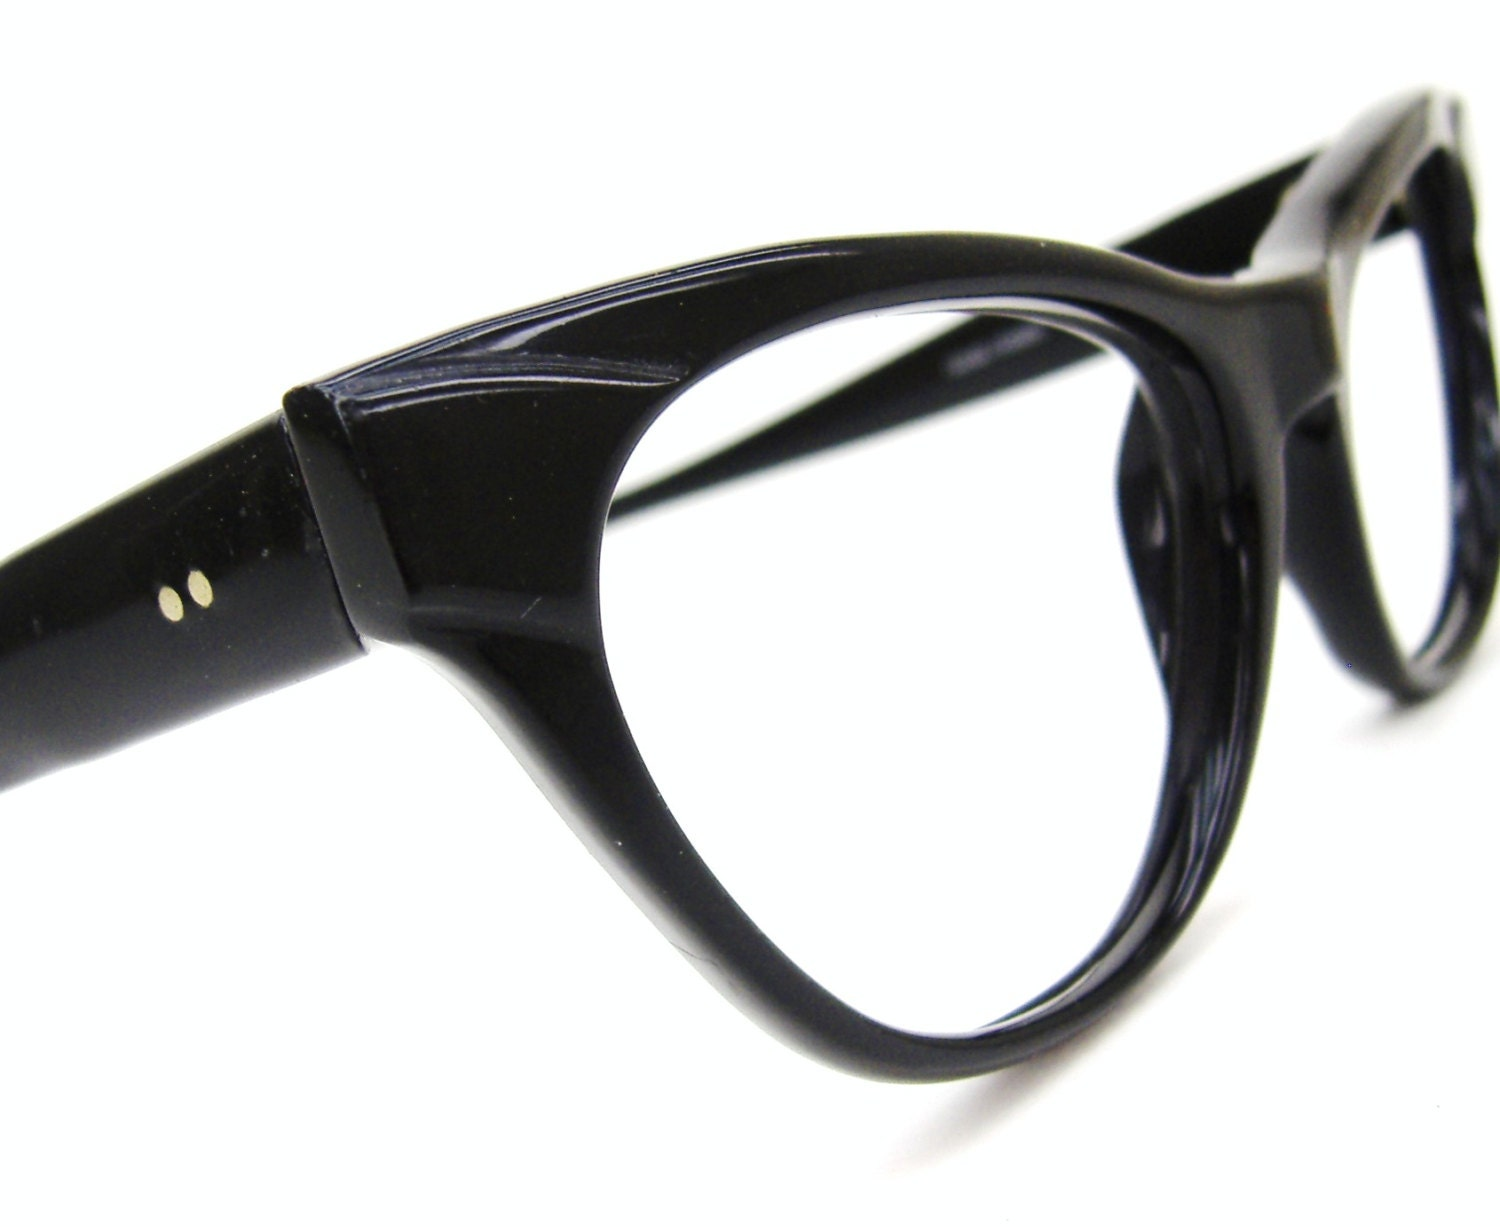 Frame Of Glasses In French : Vintage 60s Black Cat Eye Glasses French Frame